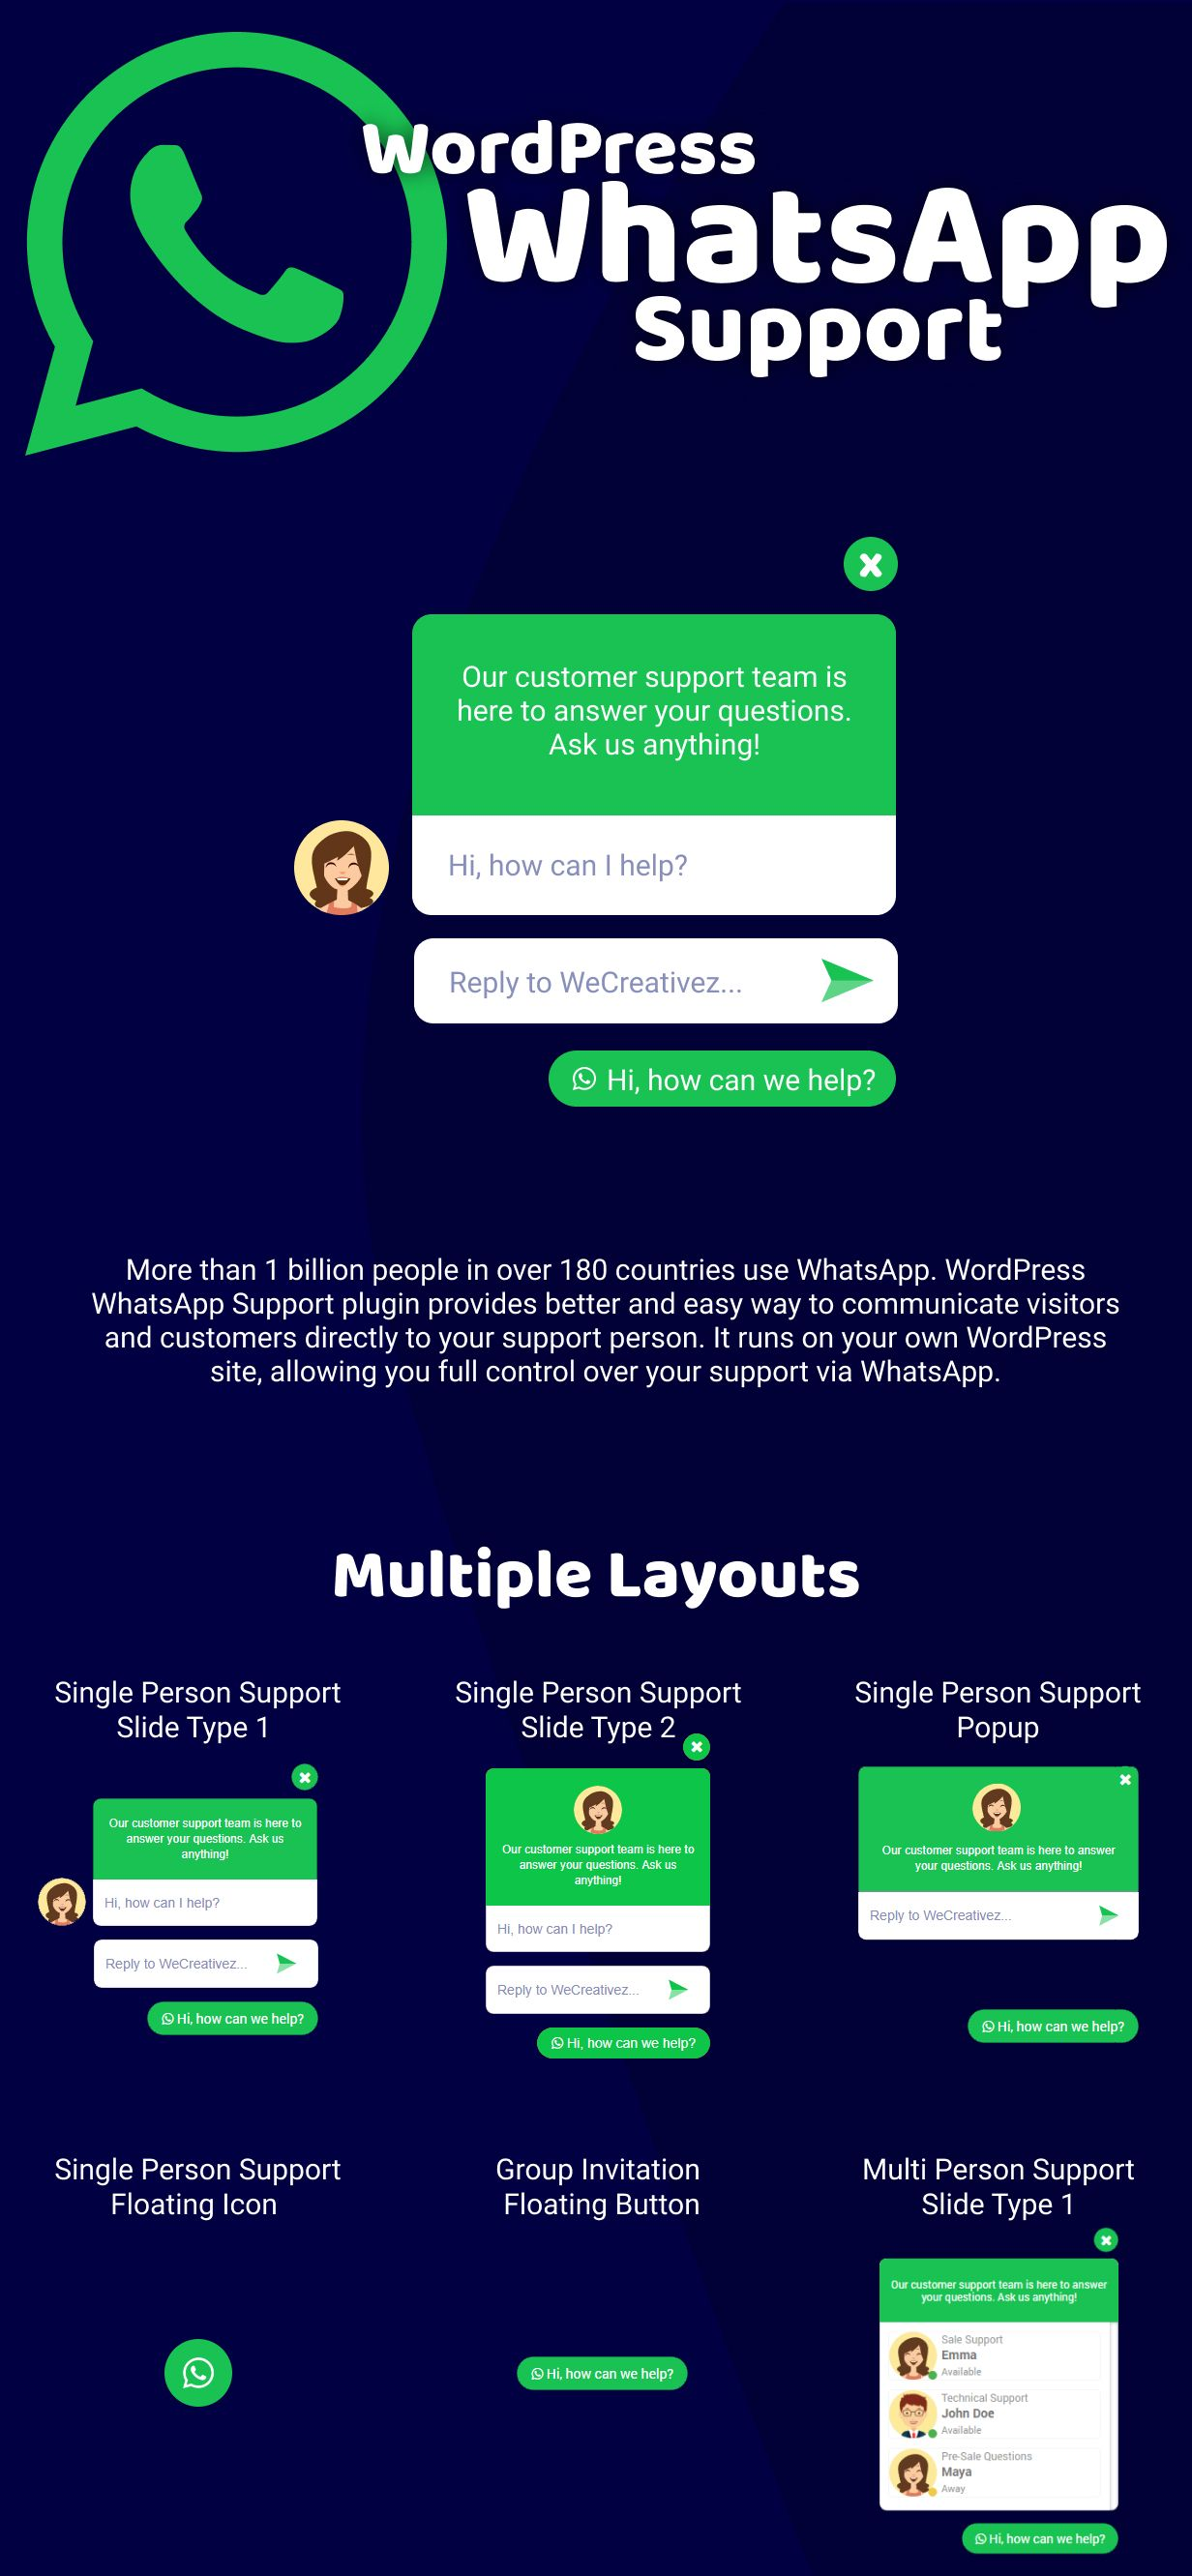 WordPress WhatsApp Support - 3